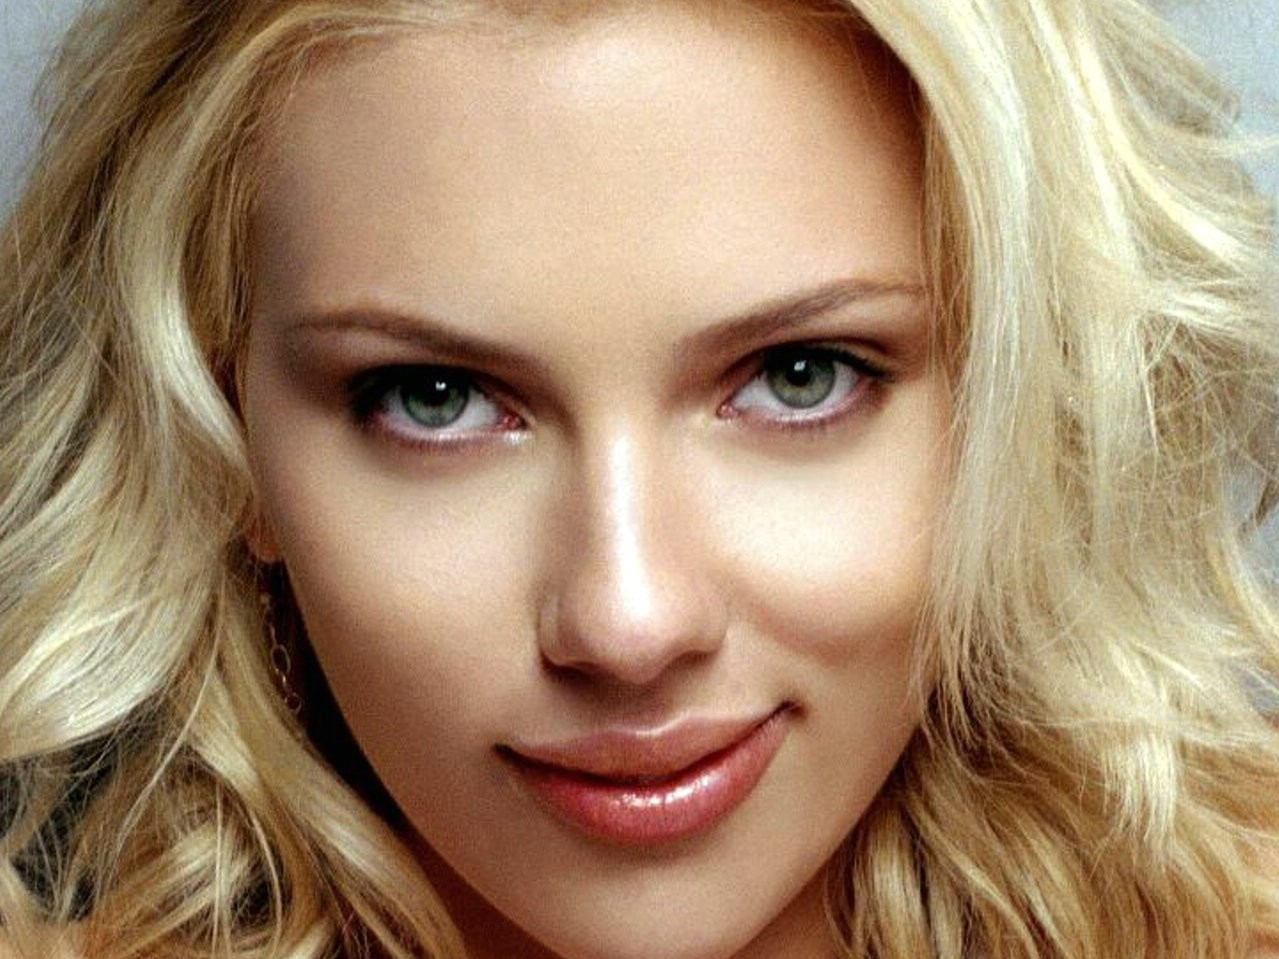 Scarlett Johansson Wallpaper: 32 Sexy Scarlett Johansson Wallpapers